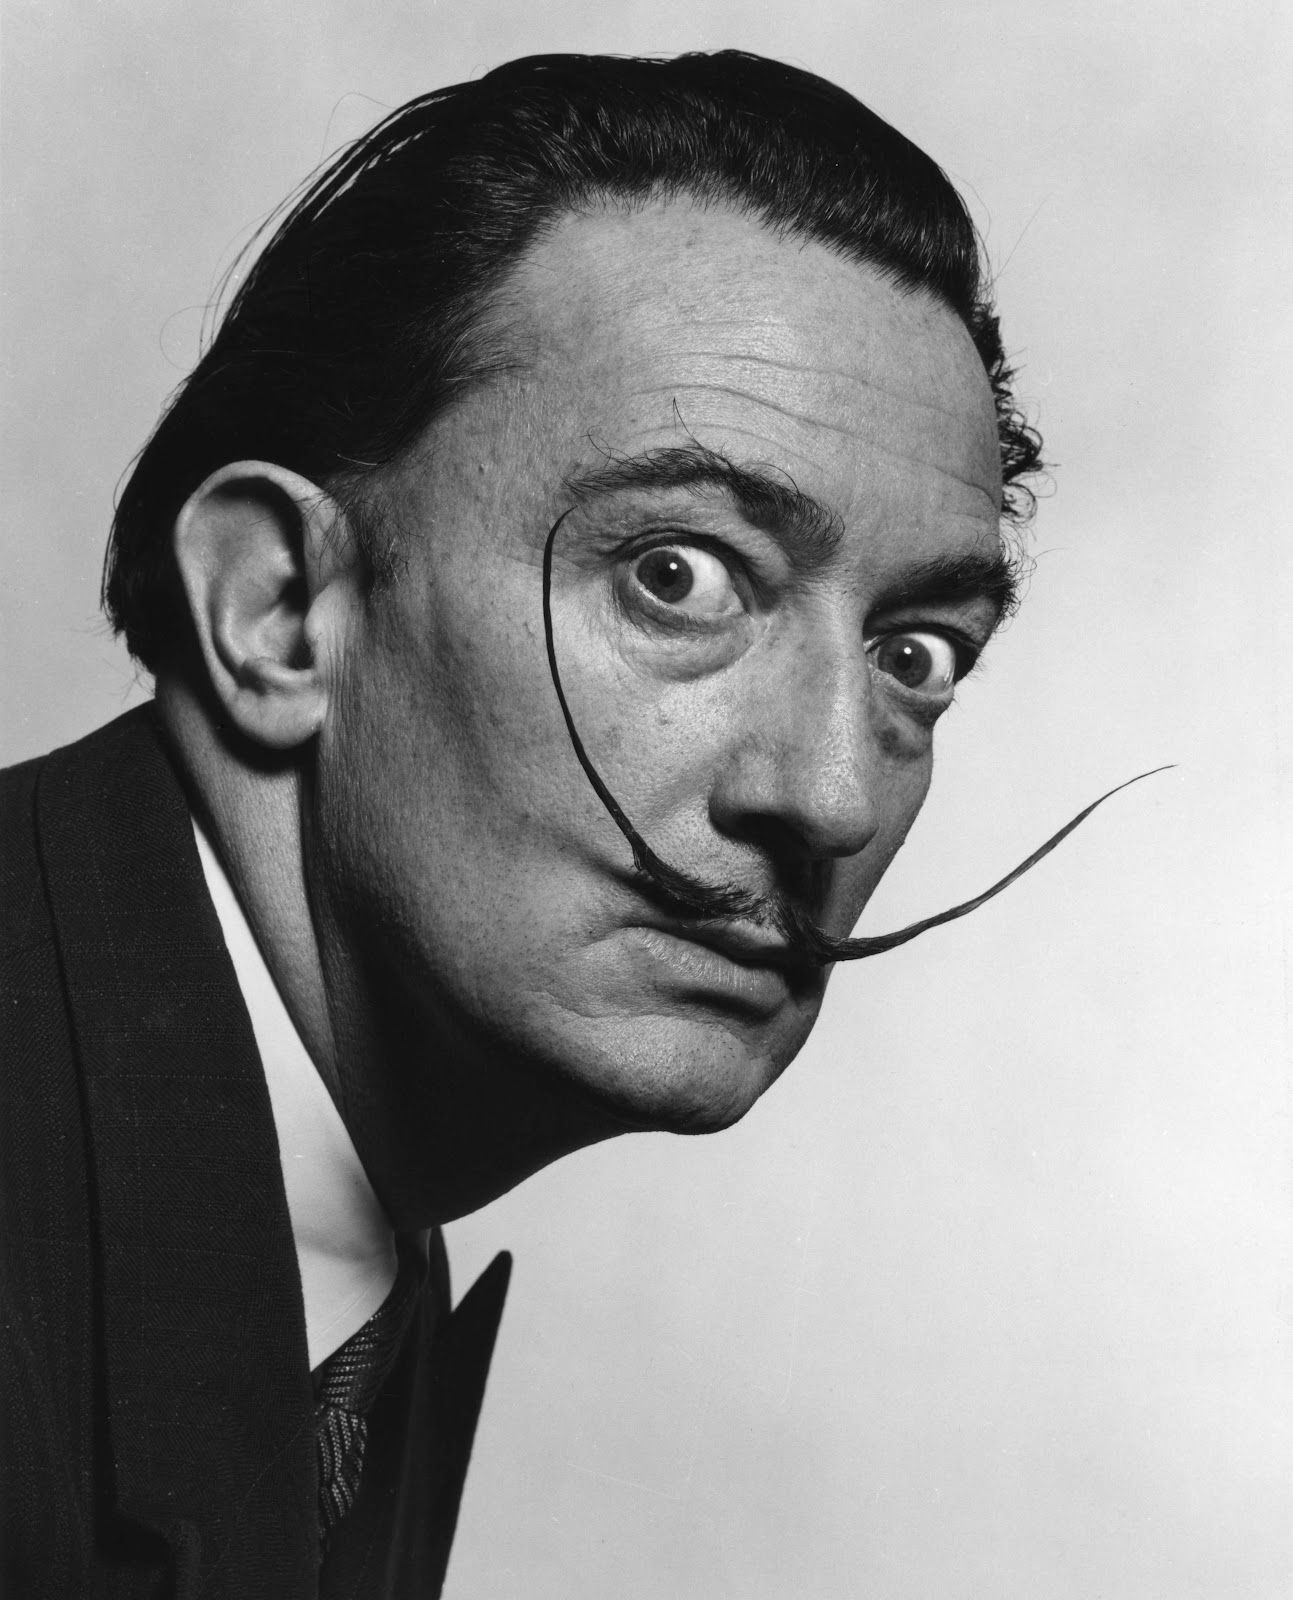 https://media.thisisgallery.com/wp-content/uploads/2018/12/salvadordali.jpg